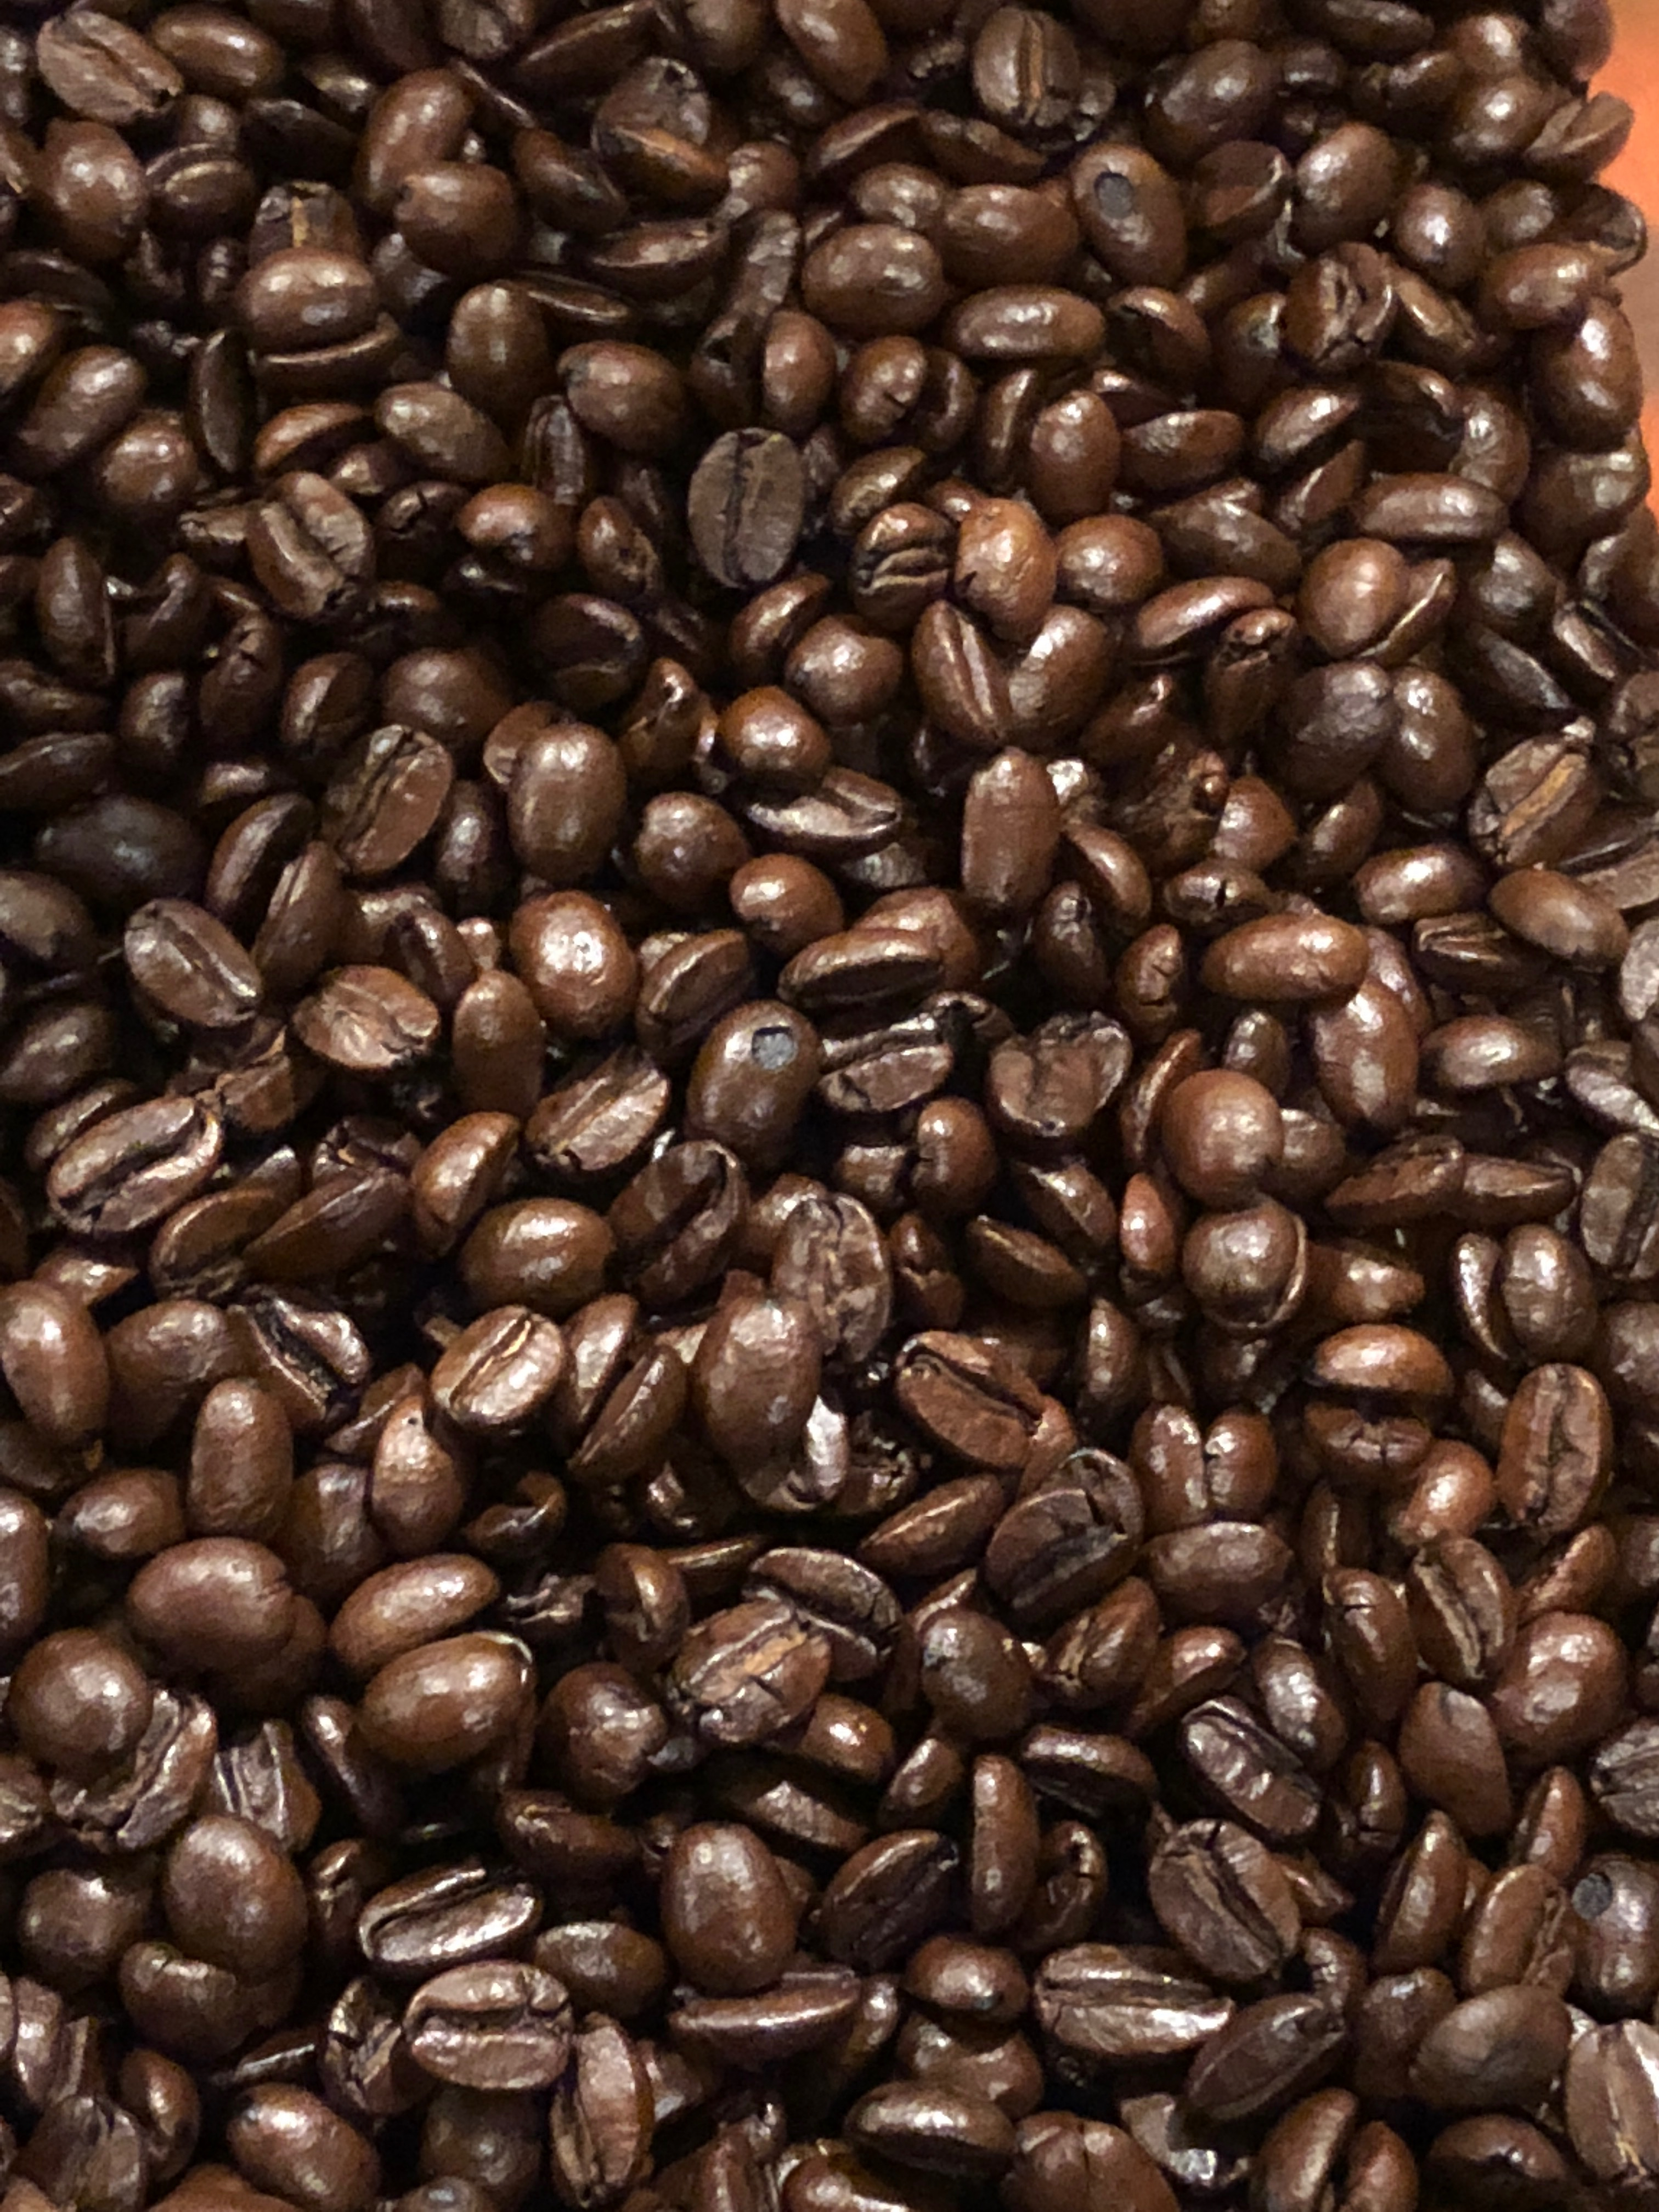 How To Make Coffee From Coffee Beans At Home